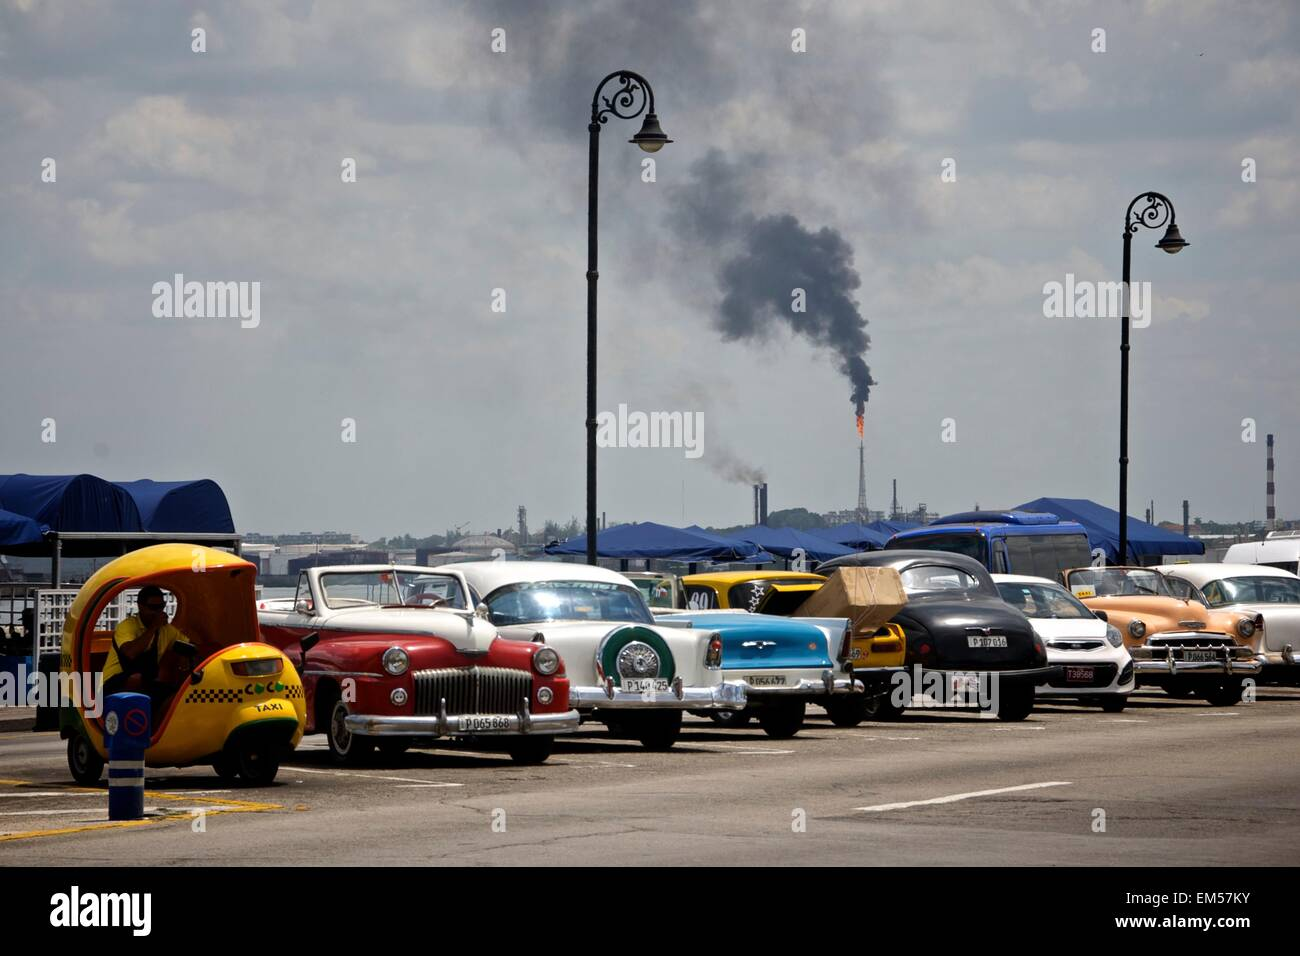 Classic American cars on a Cuban street in Havana with an oil refinery flare stack in the distance. - Stock Image